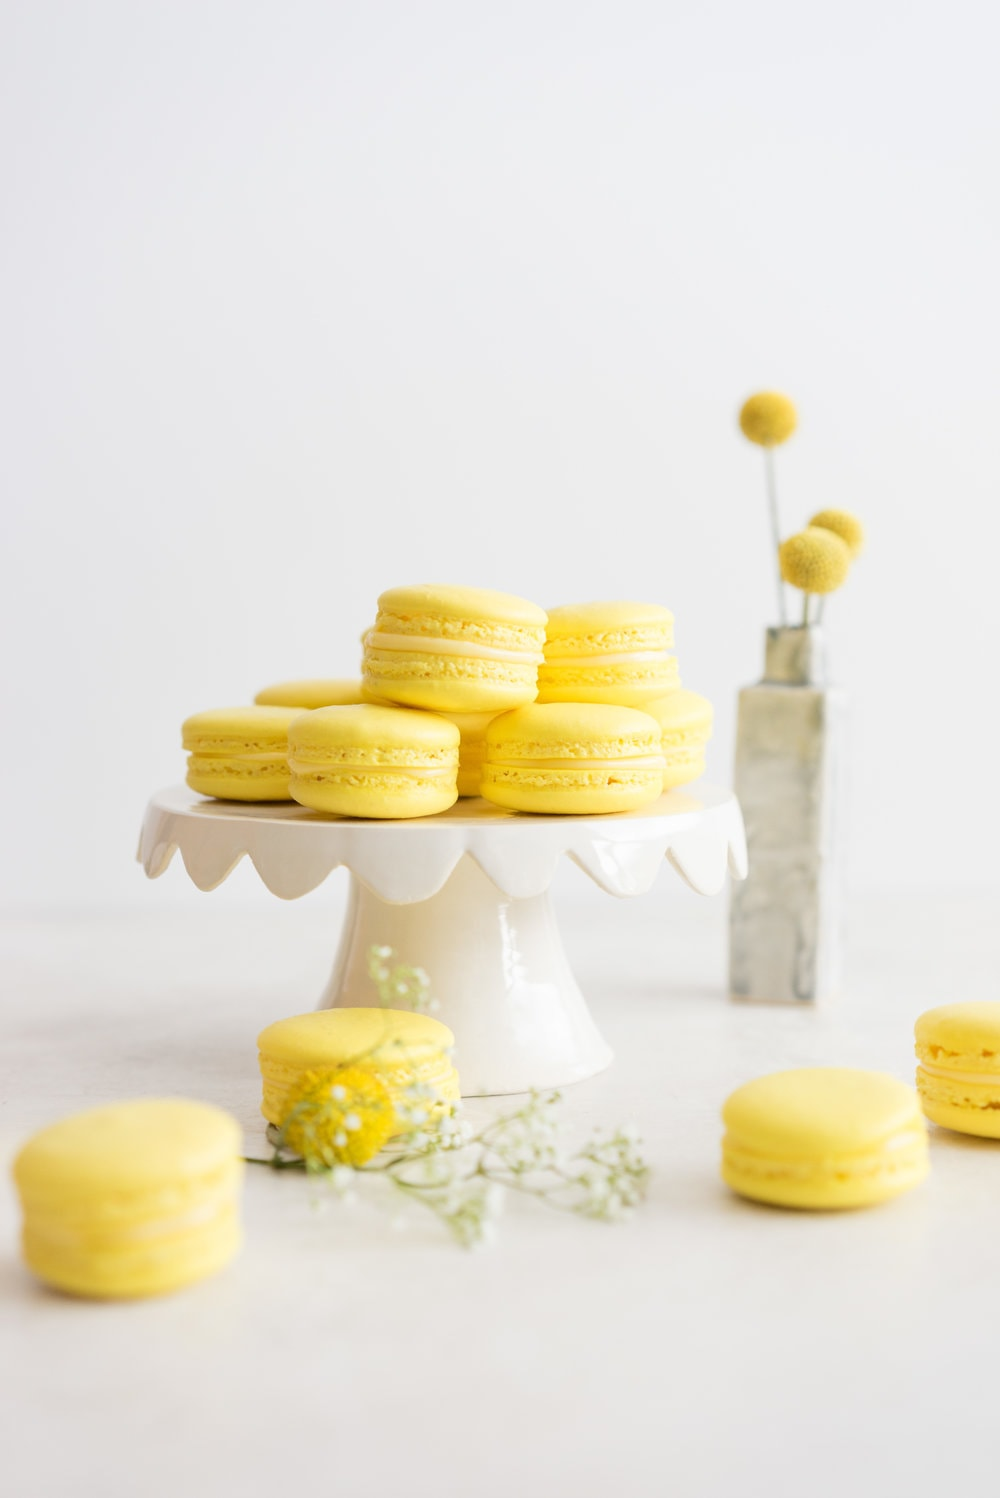 Lemon and Basil Macarons - French Macaron shells are filled with a lemon and basil cream, and a tart lemon gel. Delicate an intense flavours meld together to create the perfect bite.